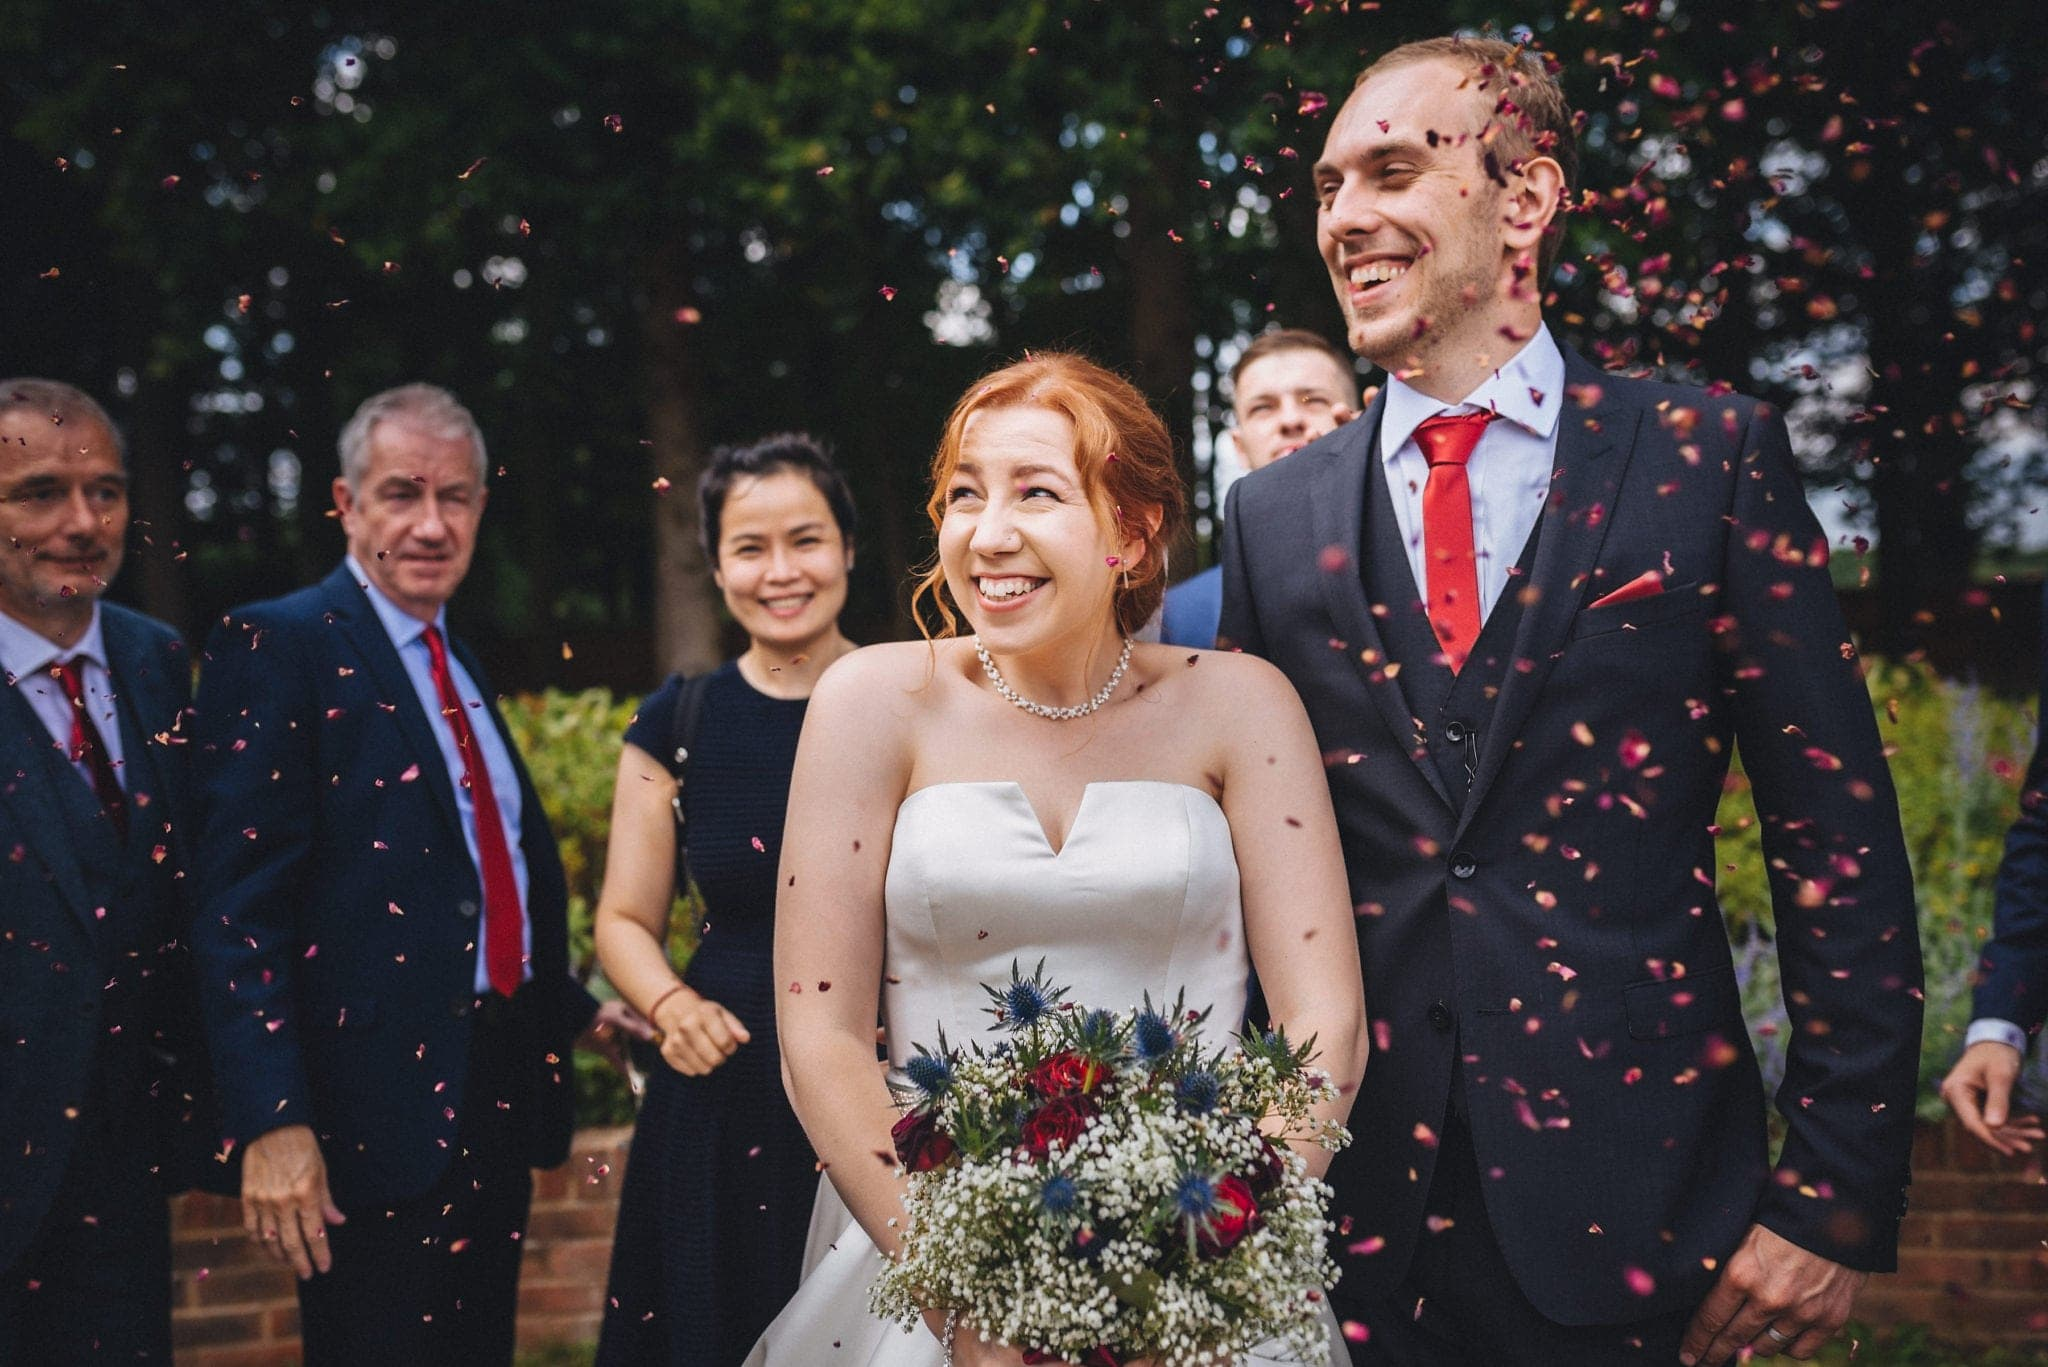 Bride and groom showered in red petal confetti at their Intimate Hever Hotel Wedding